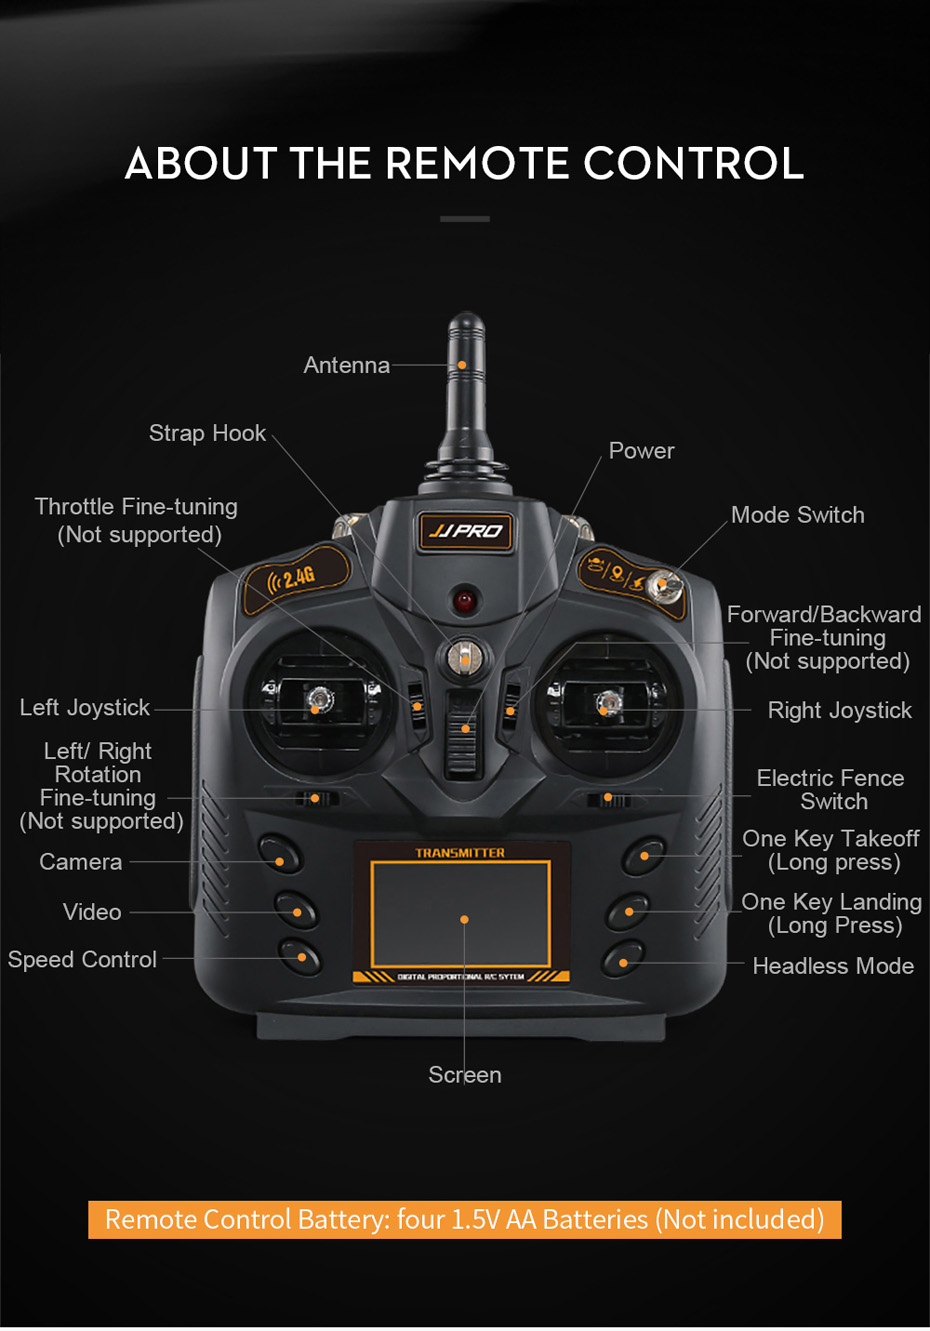 JJRC JJPRO X3 GPS Drone with Camera 1080P RC Quadcopter Profissional Brushless Motor 00mAh Battery GPS Positioning 18